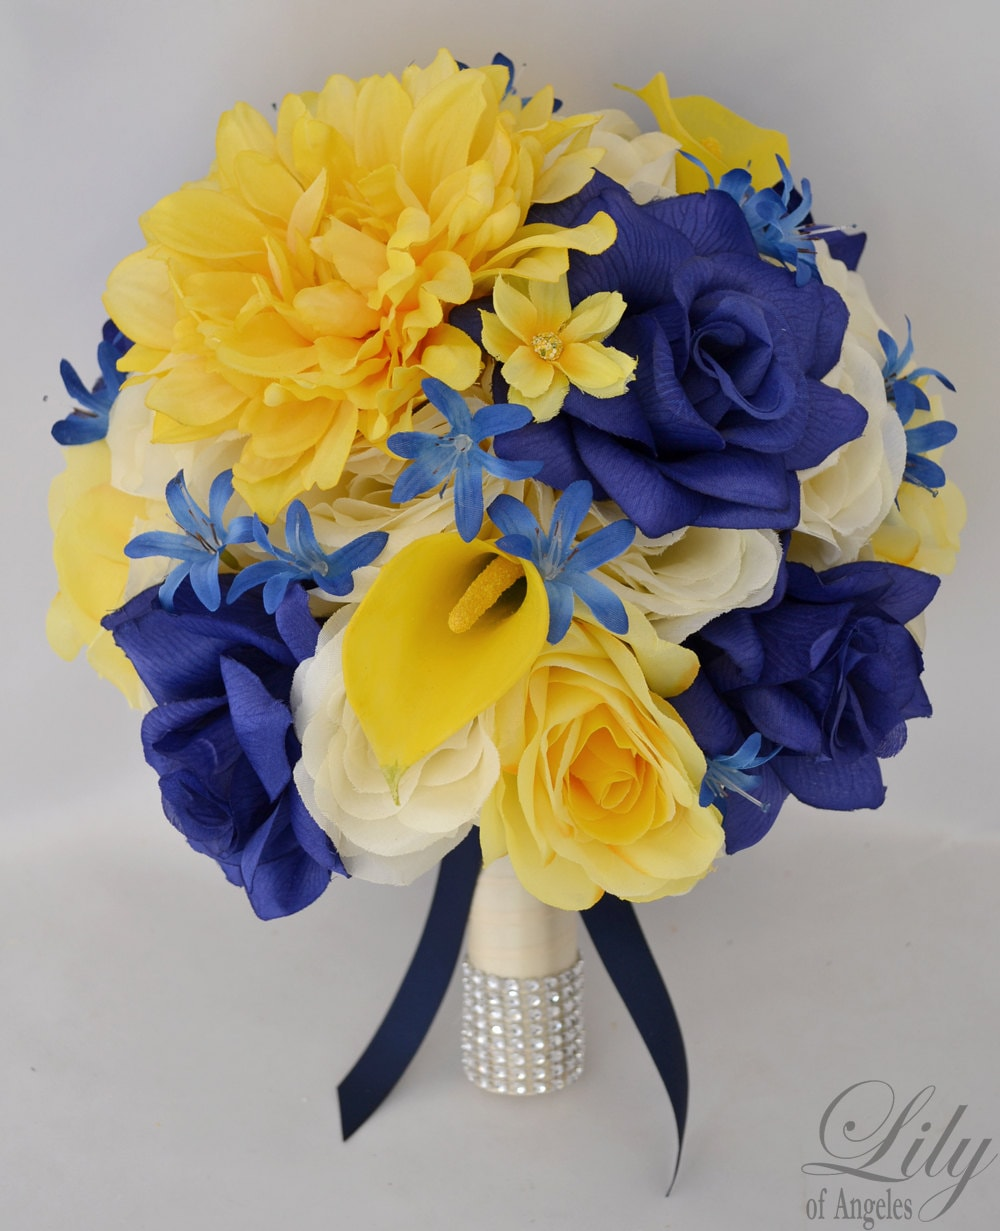 Wedding Bridal Bouquet Silk Flowers Bouquets Decoration 17 Pieces Package YELLOW BLUE NAVY Lily